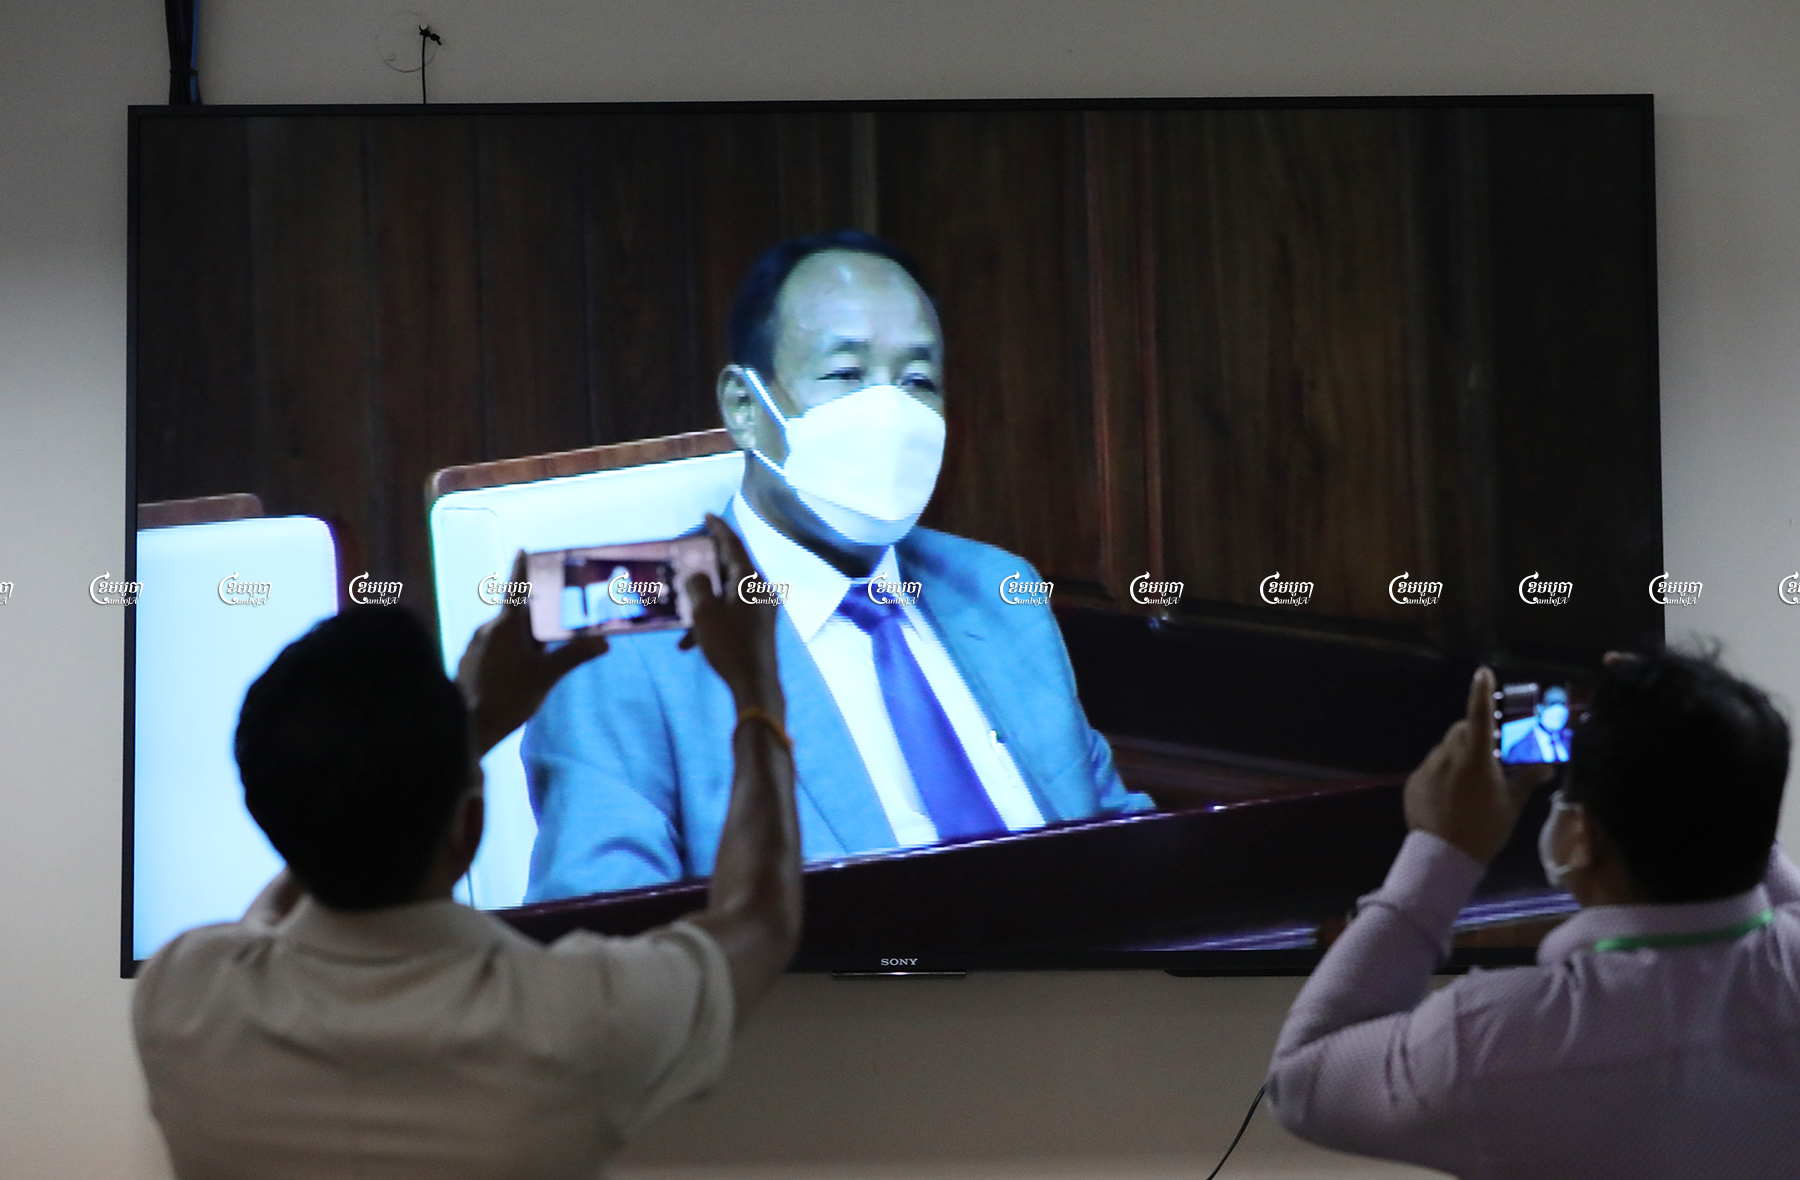 Prach Chan, the new chairman of the National Election Committee, is seen on live television at the National Assembly in Phnom Penh, June 24. CamboJA/ Pring Samrang